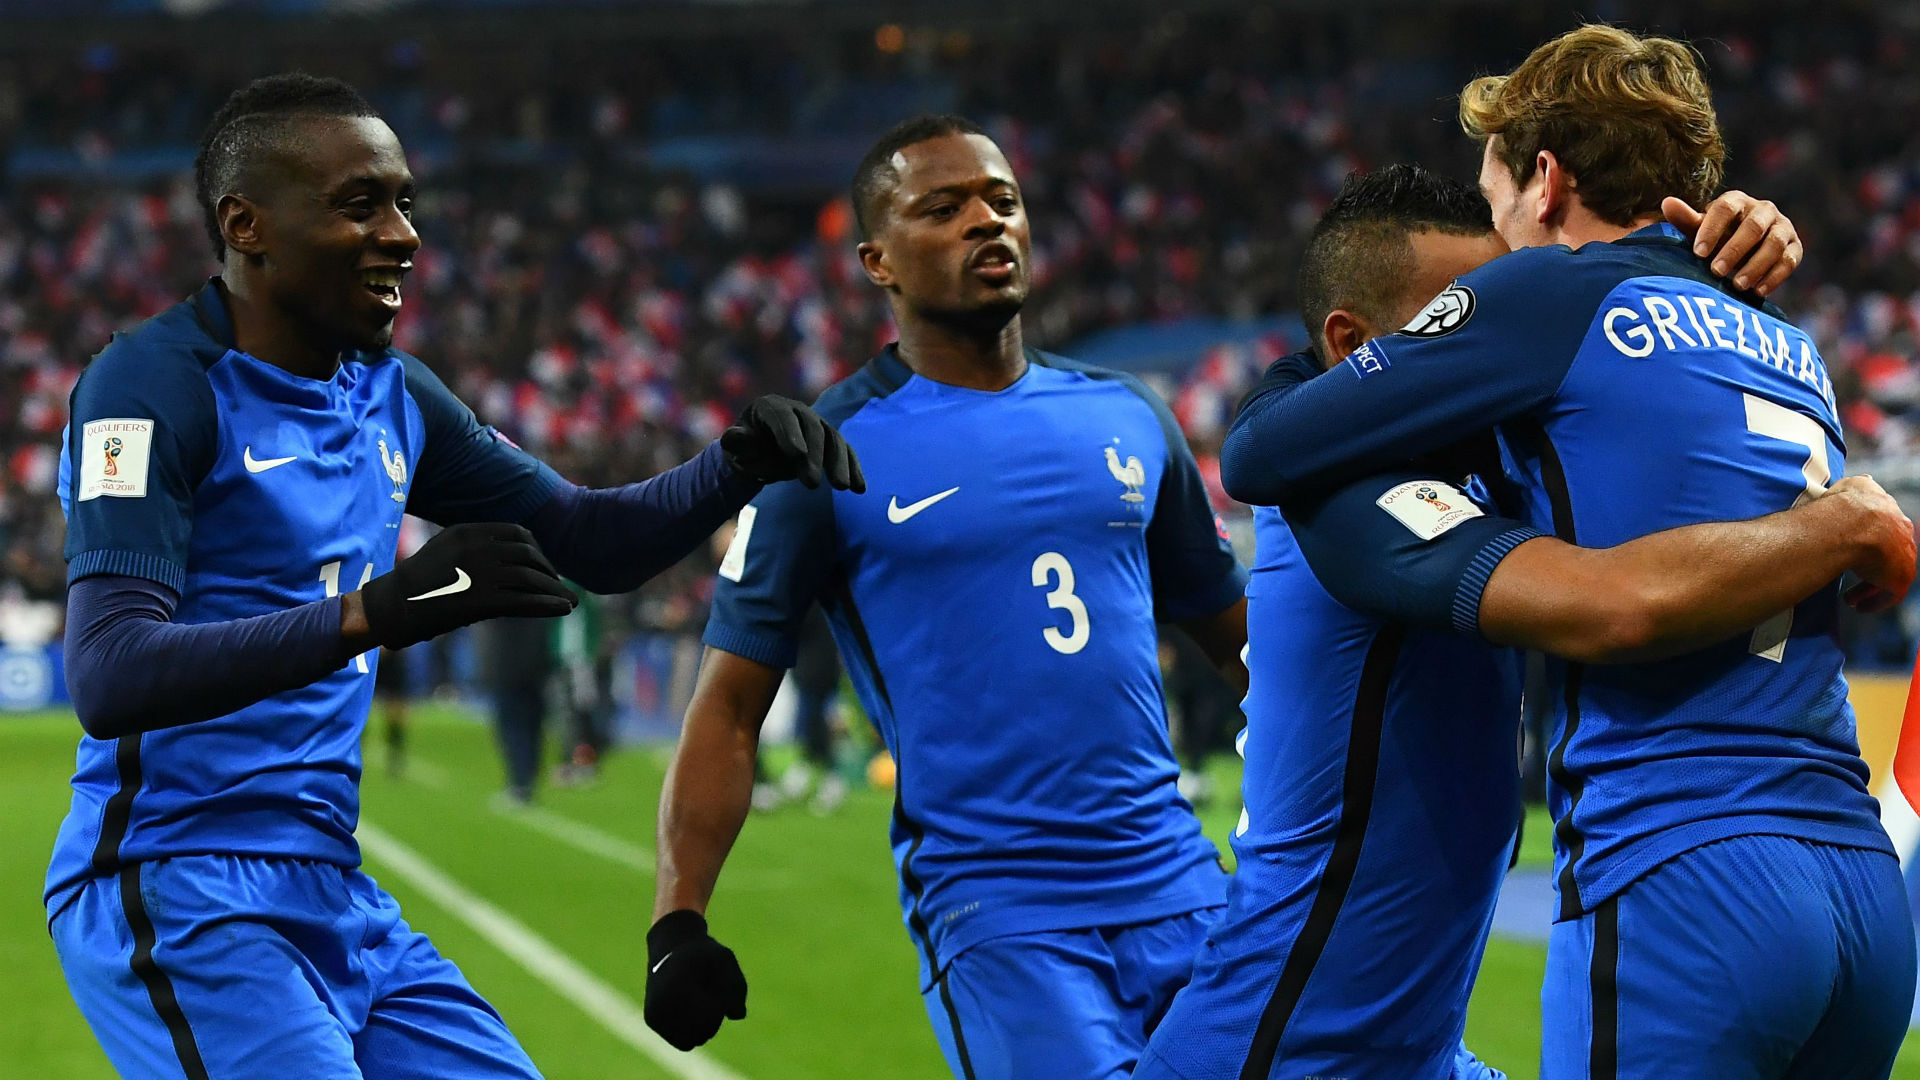 Antoine Griezmann Dimitri Payet France Sweden World Cup Qualifiers 11112016